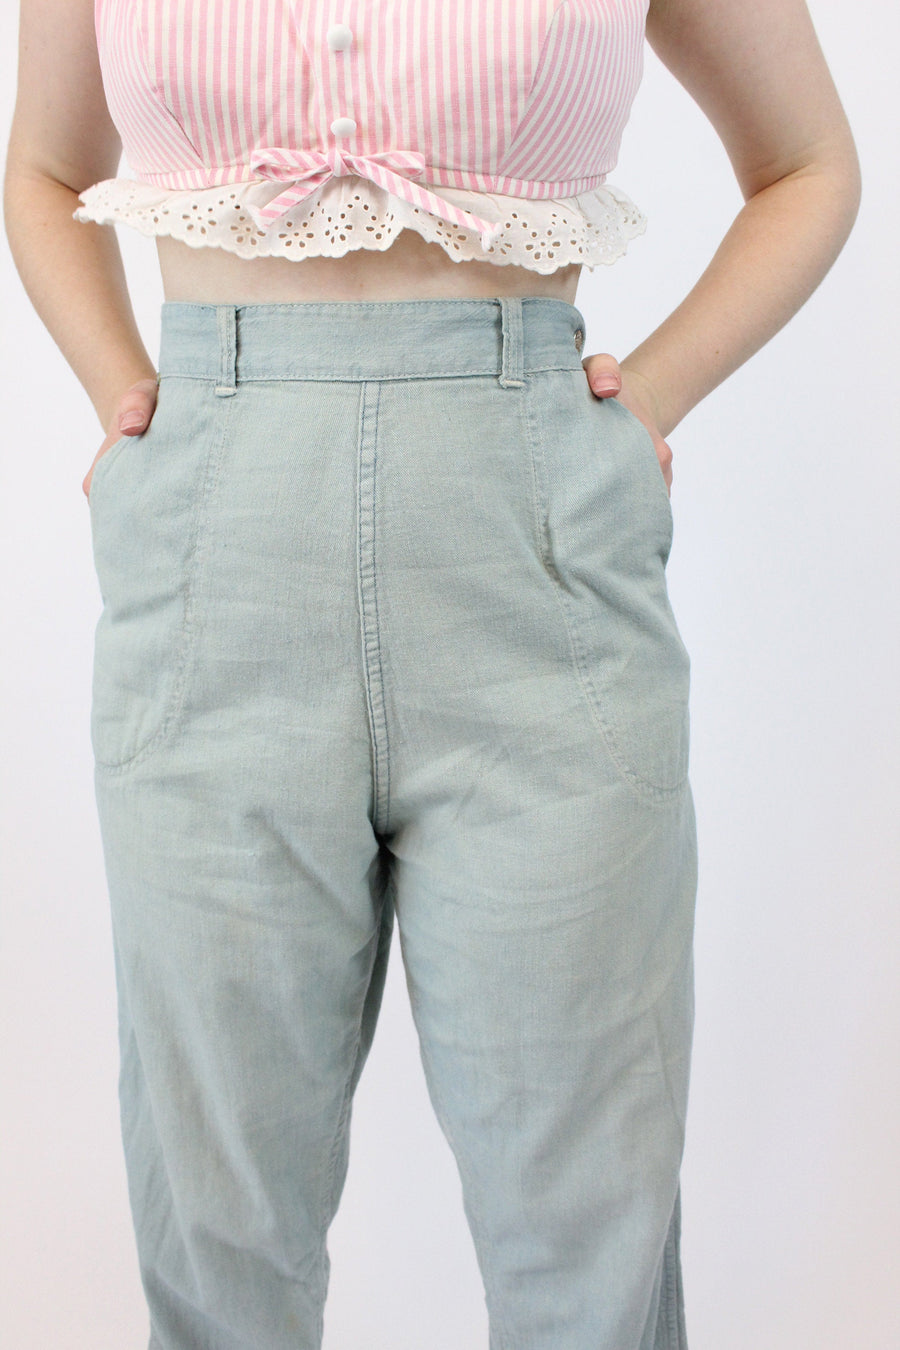 1950s jeans denim workwear medium large | high-waisted pants  | new in